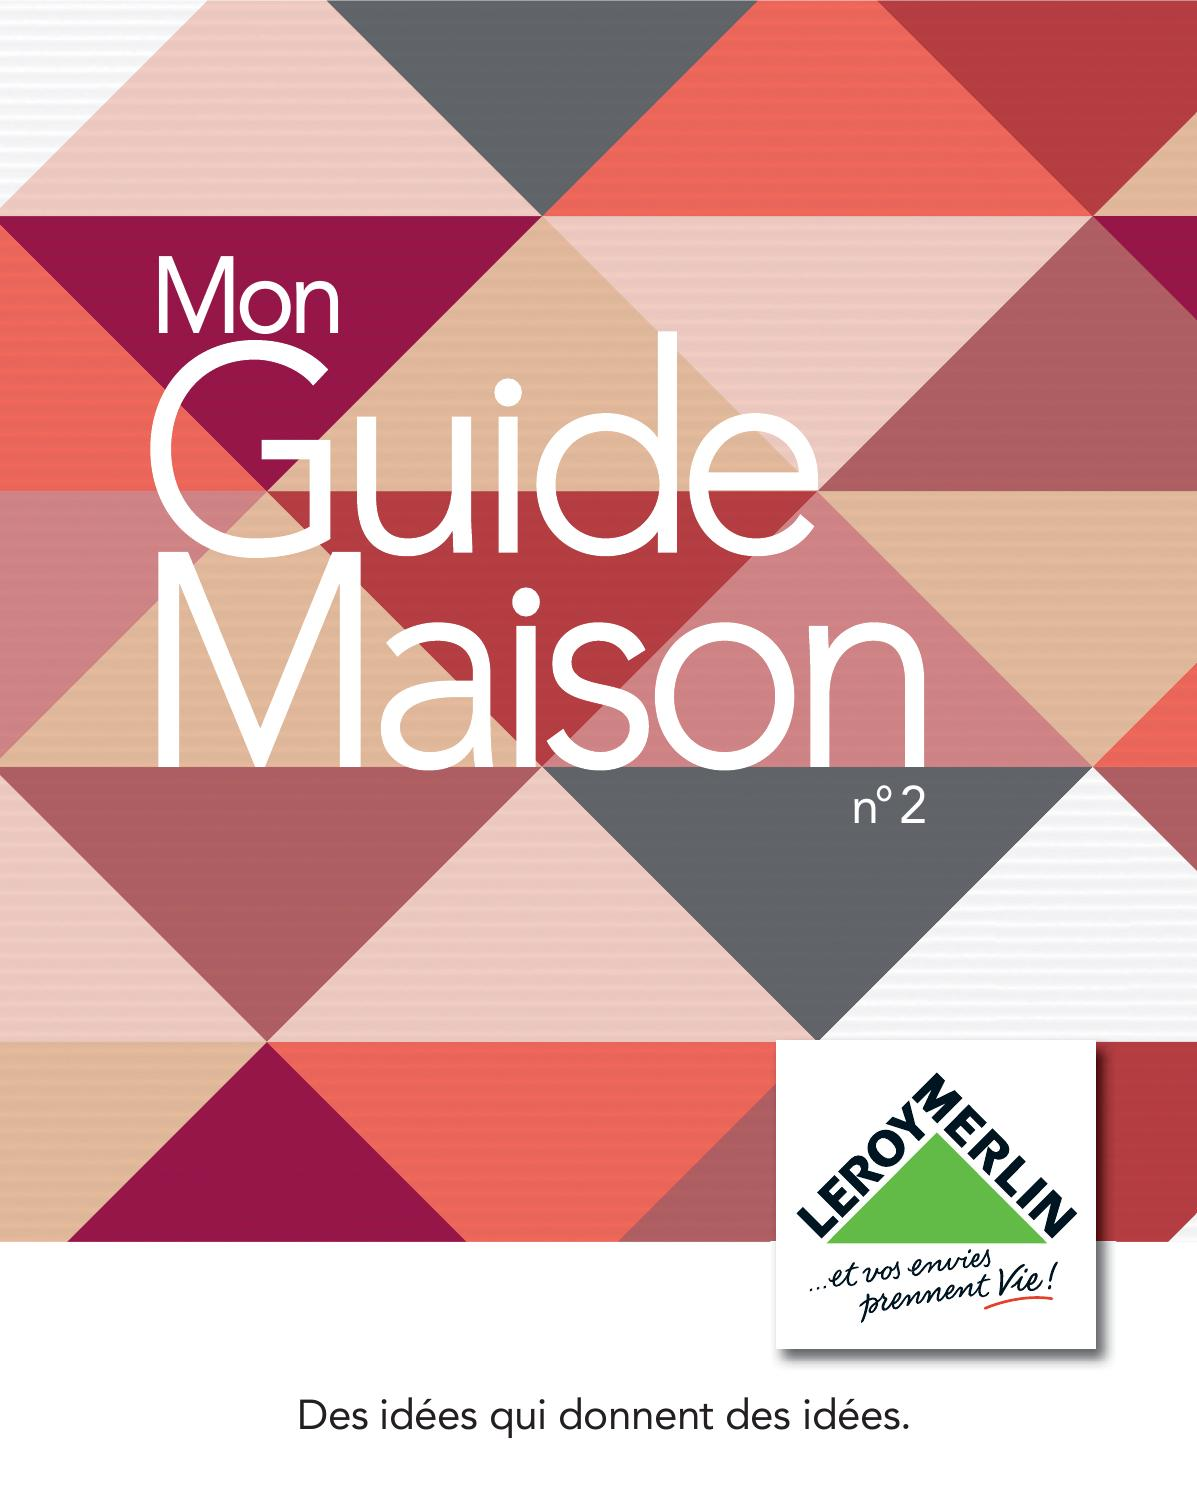 Leroy merlin catalogue guide maison 2015 by for Remachadora manual leroy merlin